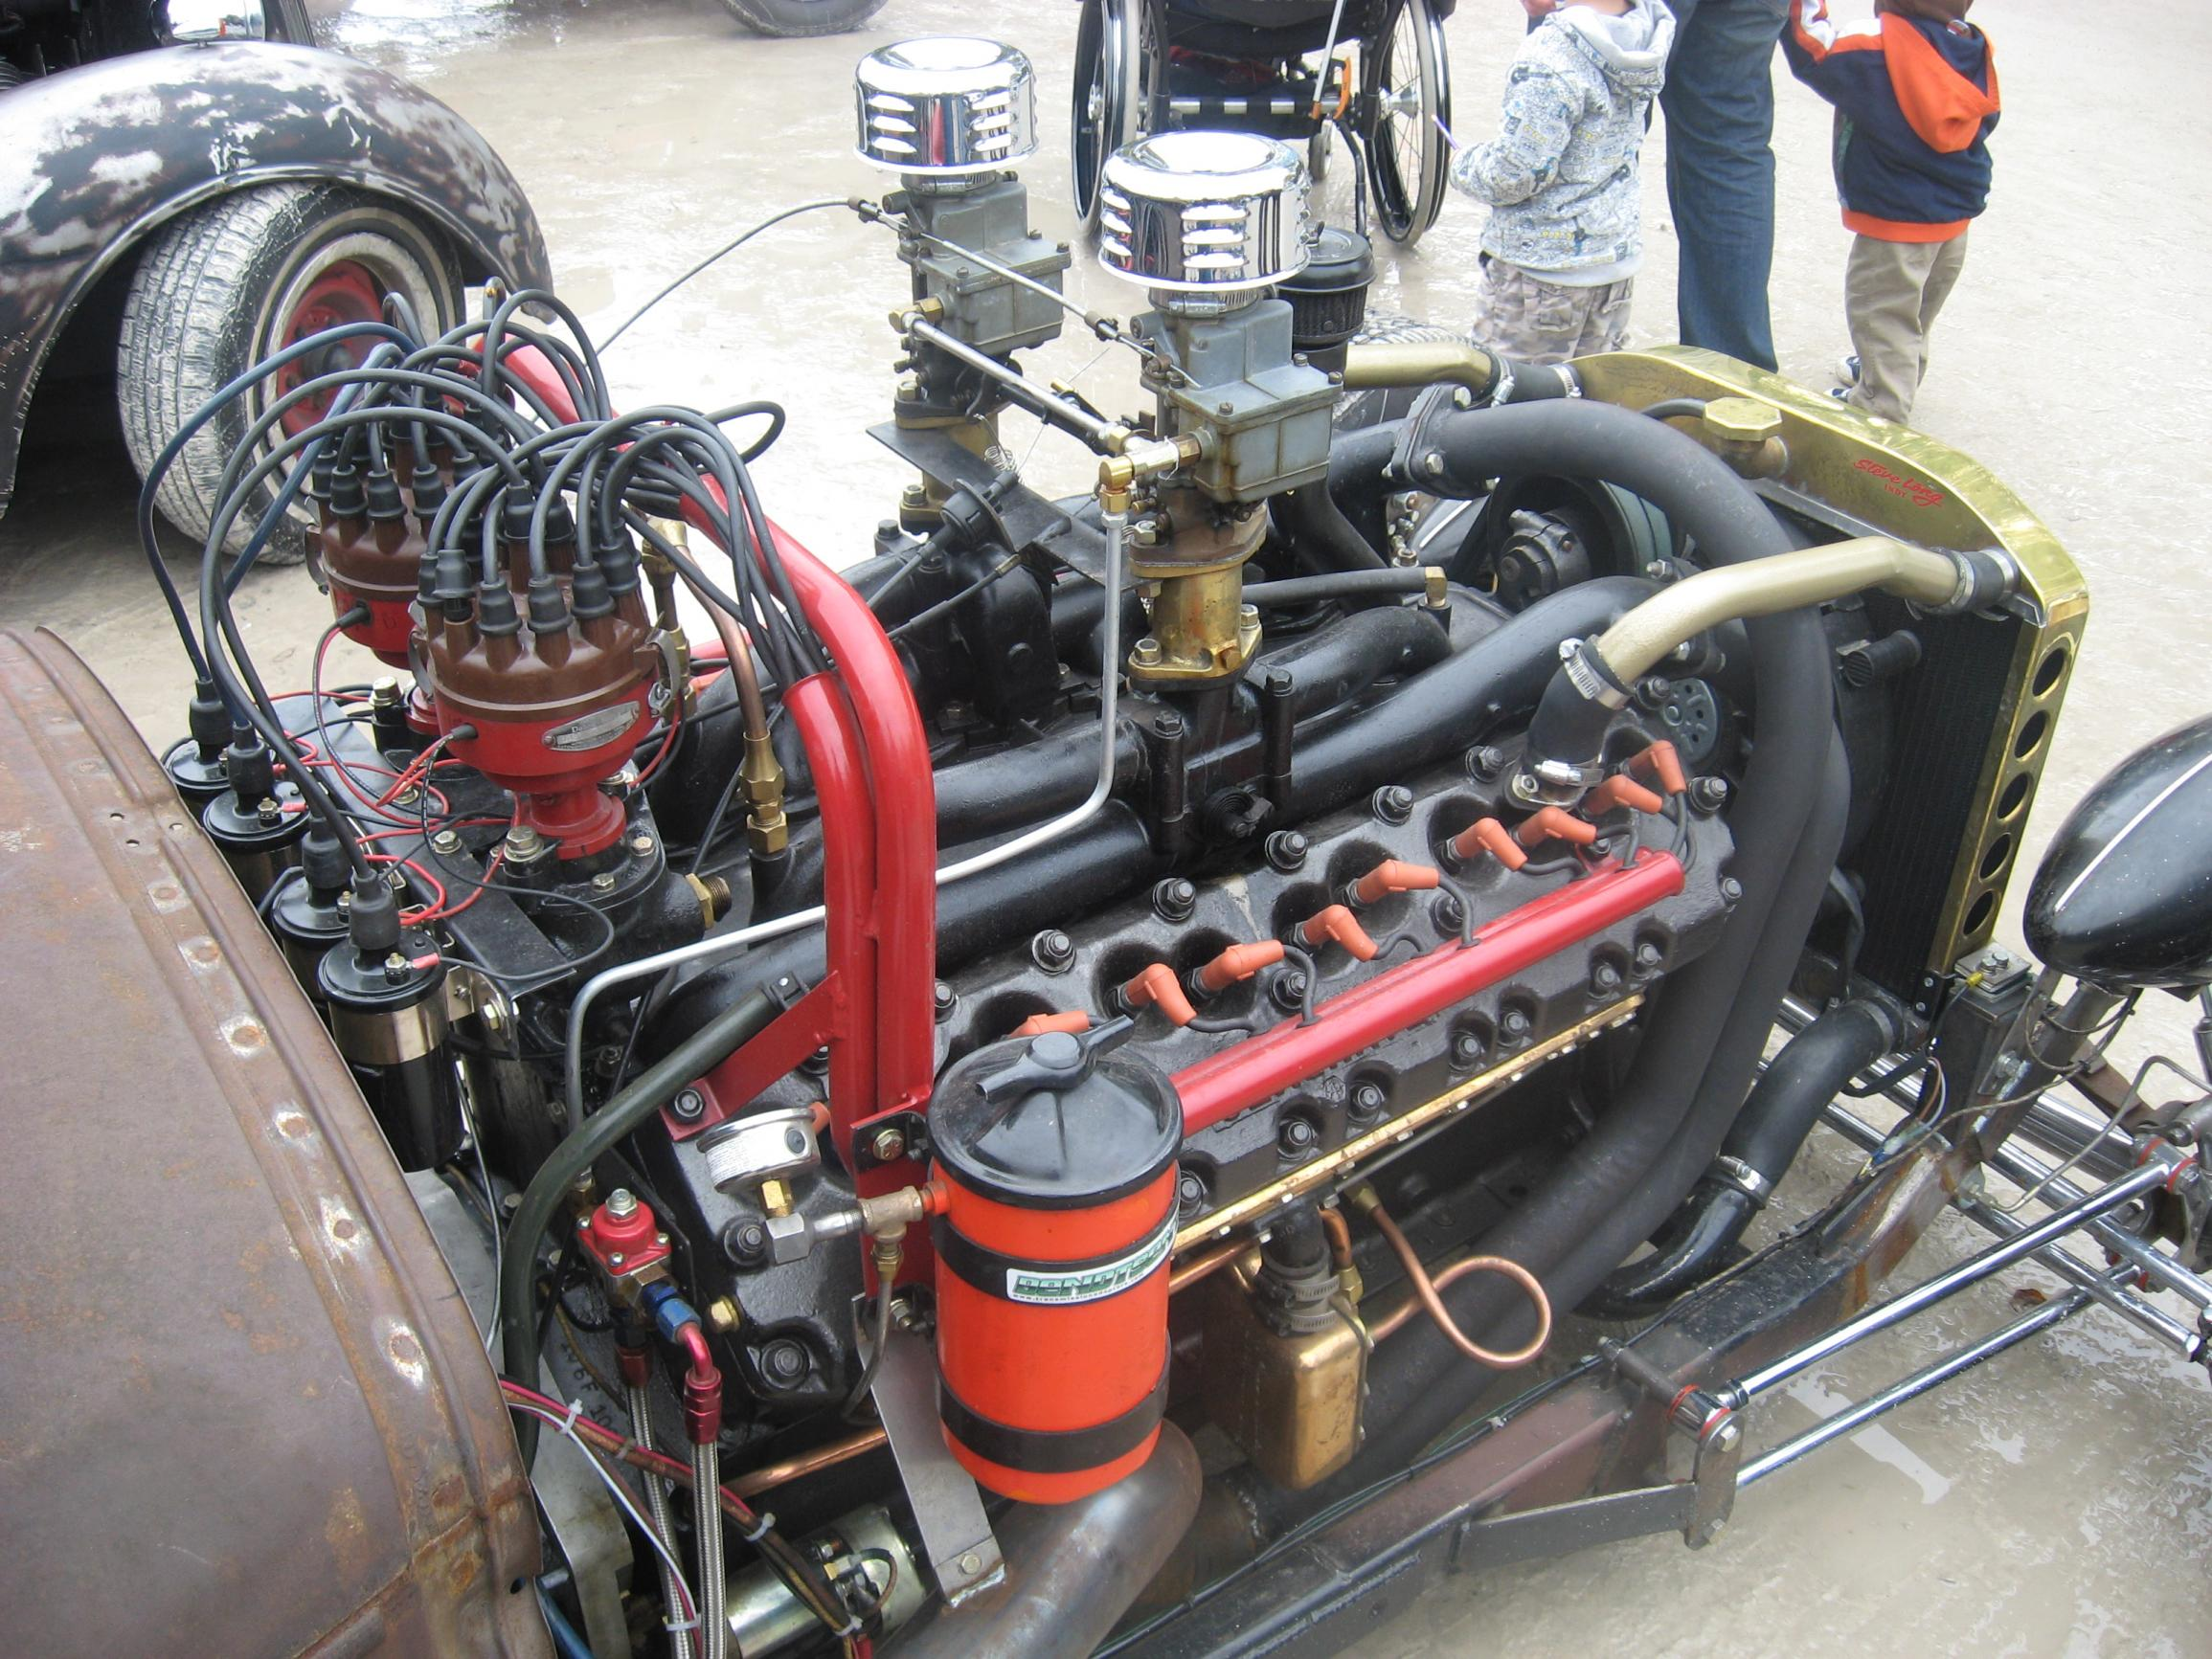 Seagrave V12 rat-rod, shot 9.